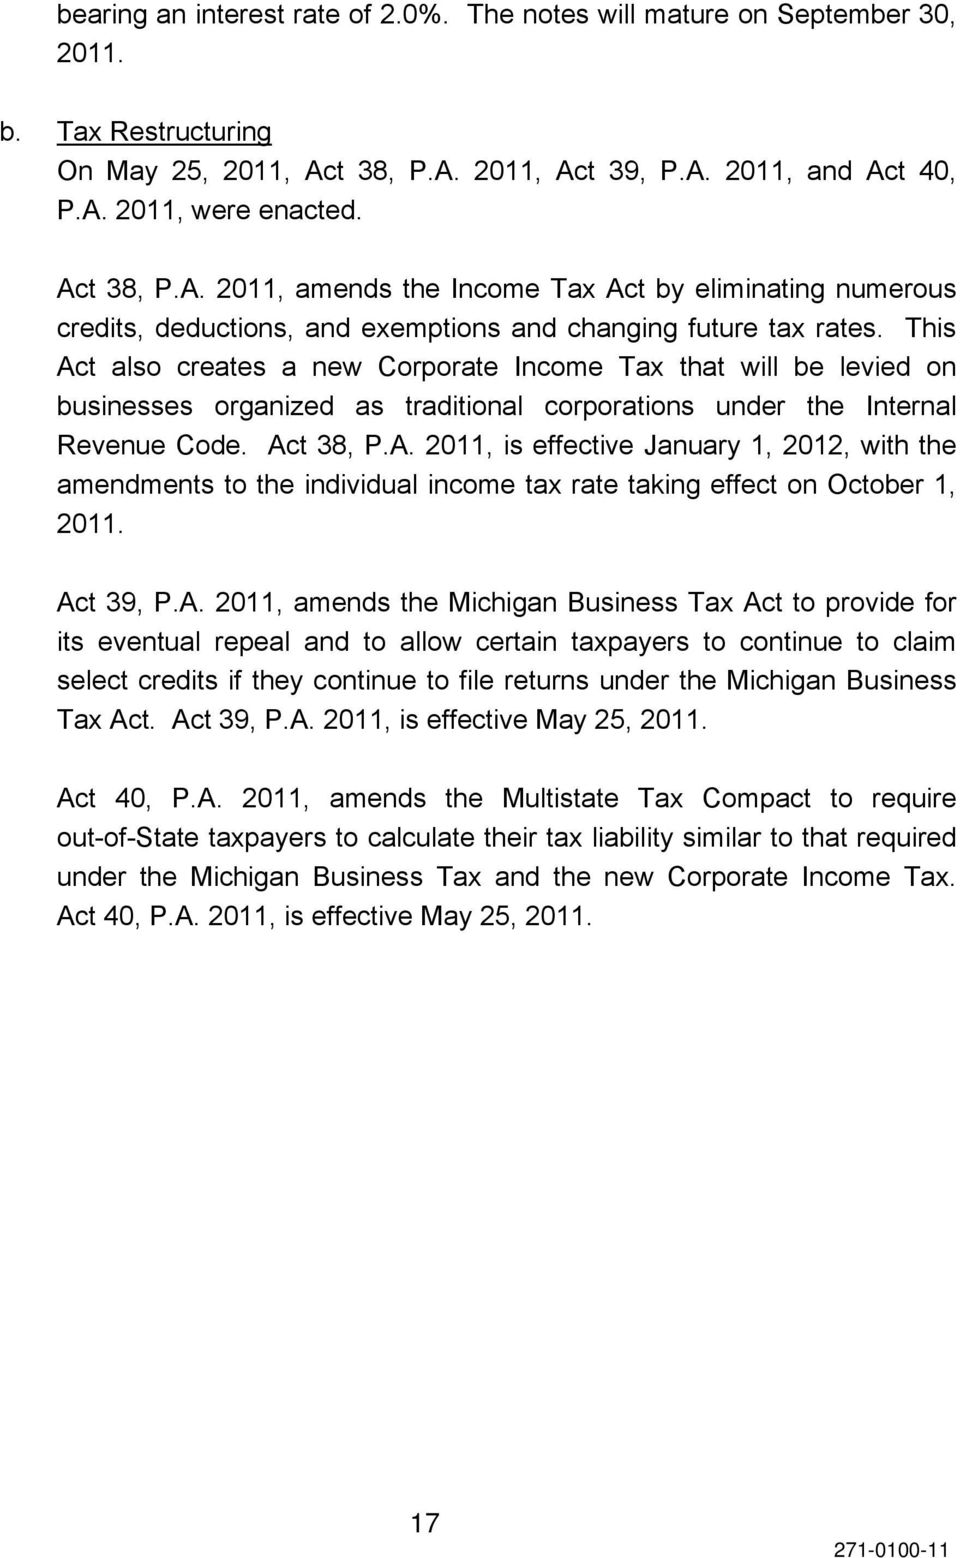 This Act also creates a new Corporate Income Tax that will be levied on businesses organized as traditional corporations under the Internal Revenue Code. Act 38, P.A. 2011, is effective January 1, 2012, with the amendments to the individual income tax rate taking effect on October 1, 2011.